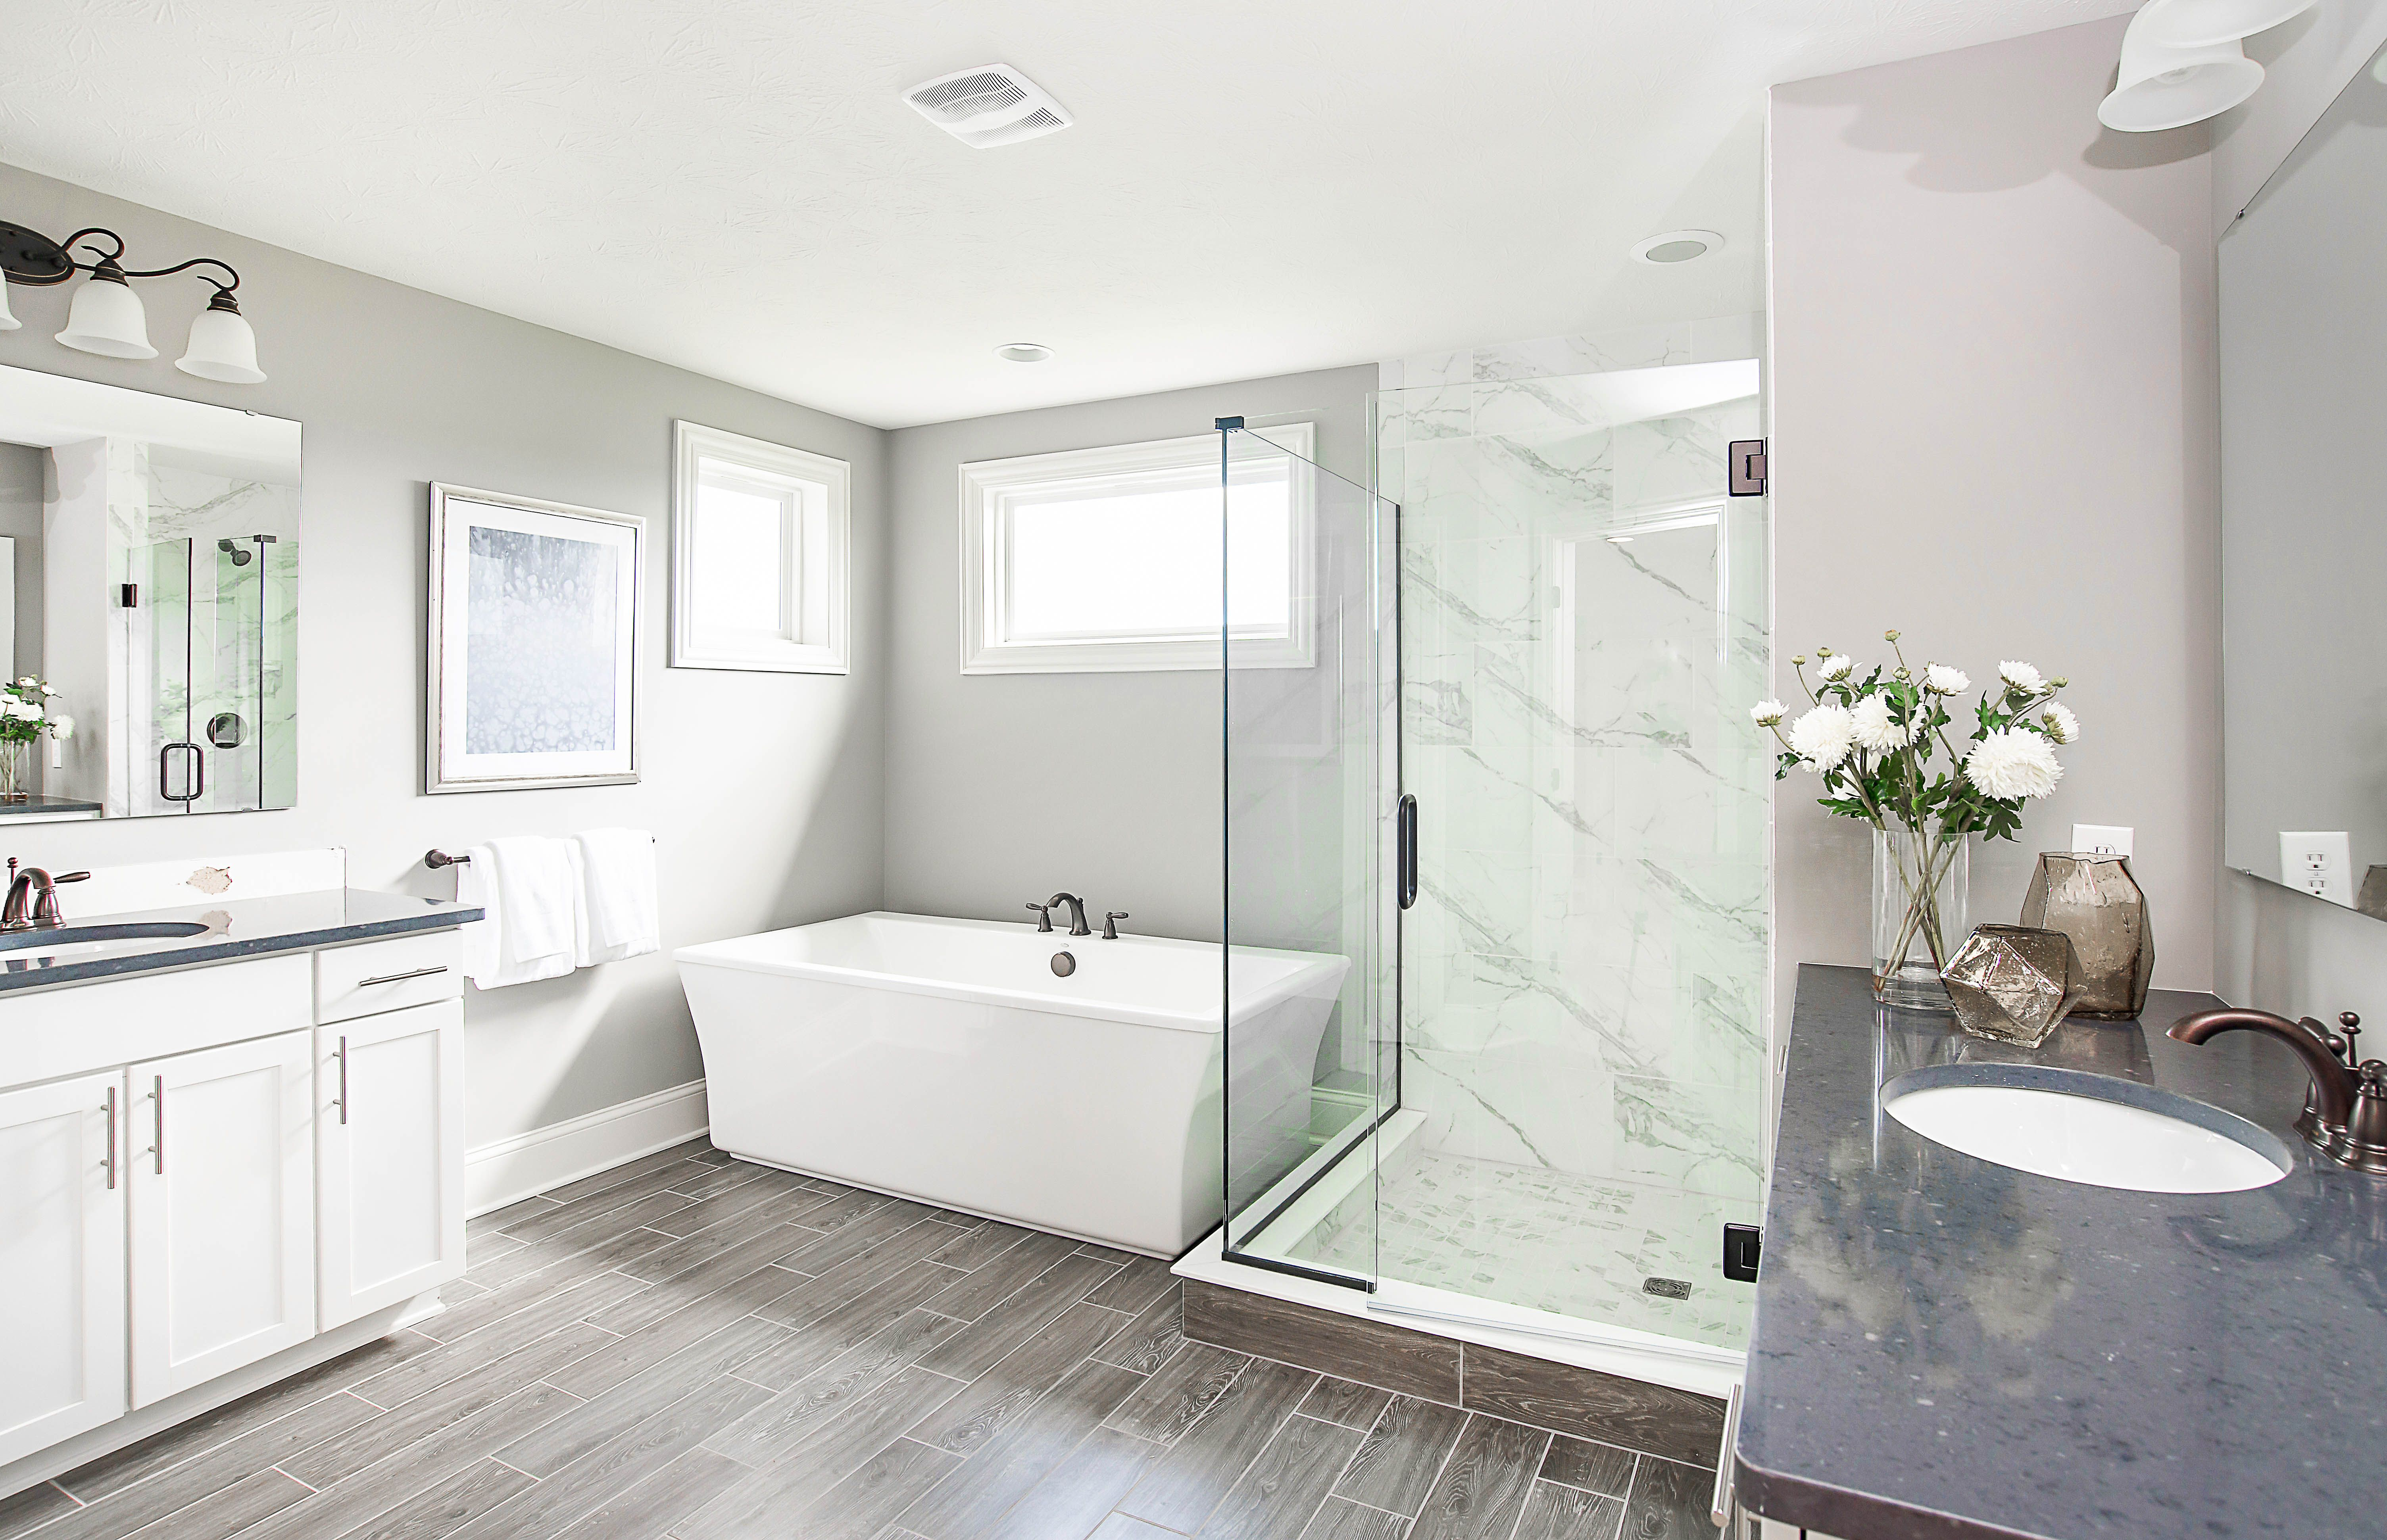 Masterful Bathrooms | Pulte Homes | Pulte homes, New homes ...